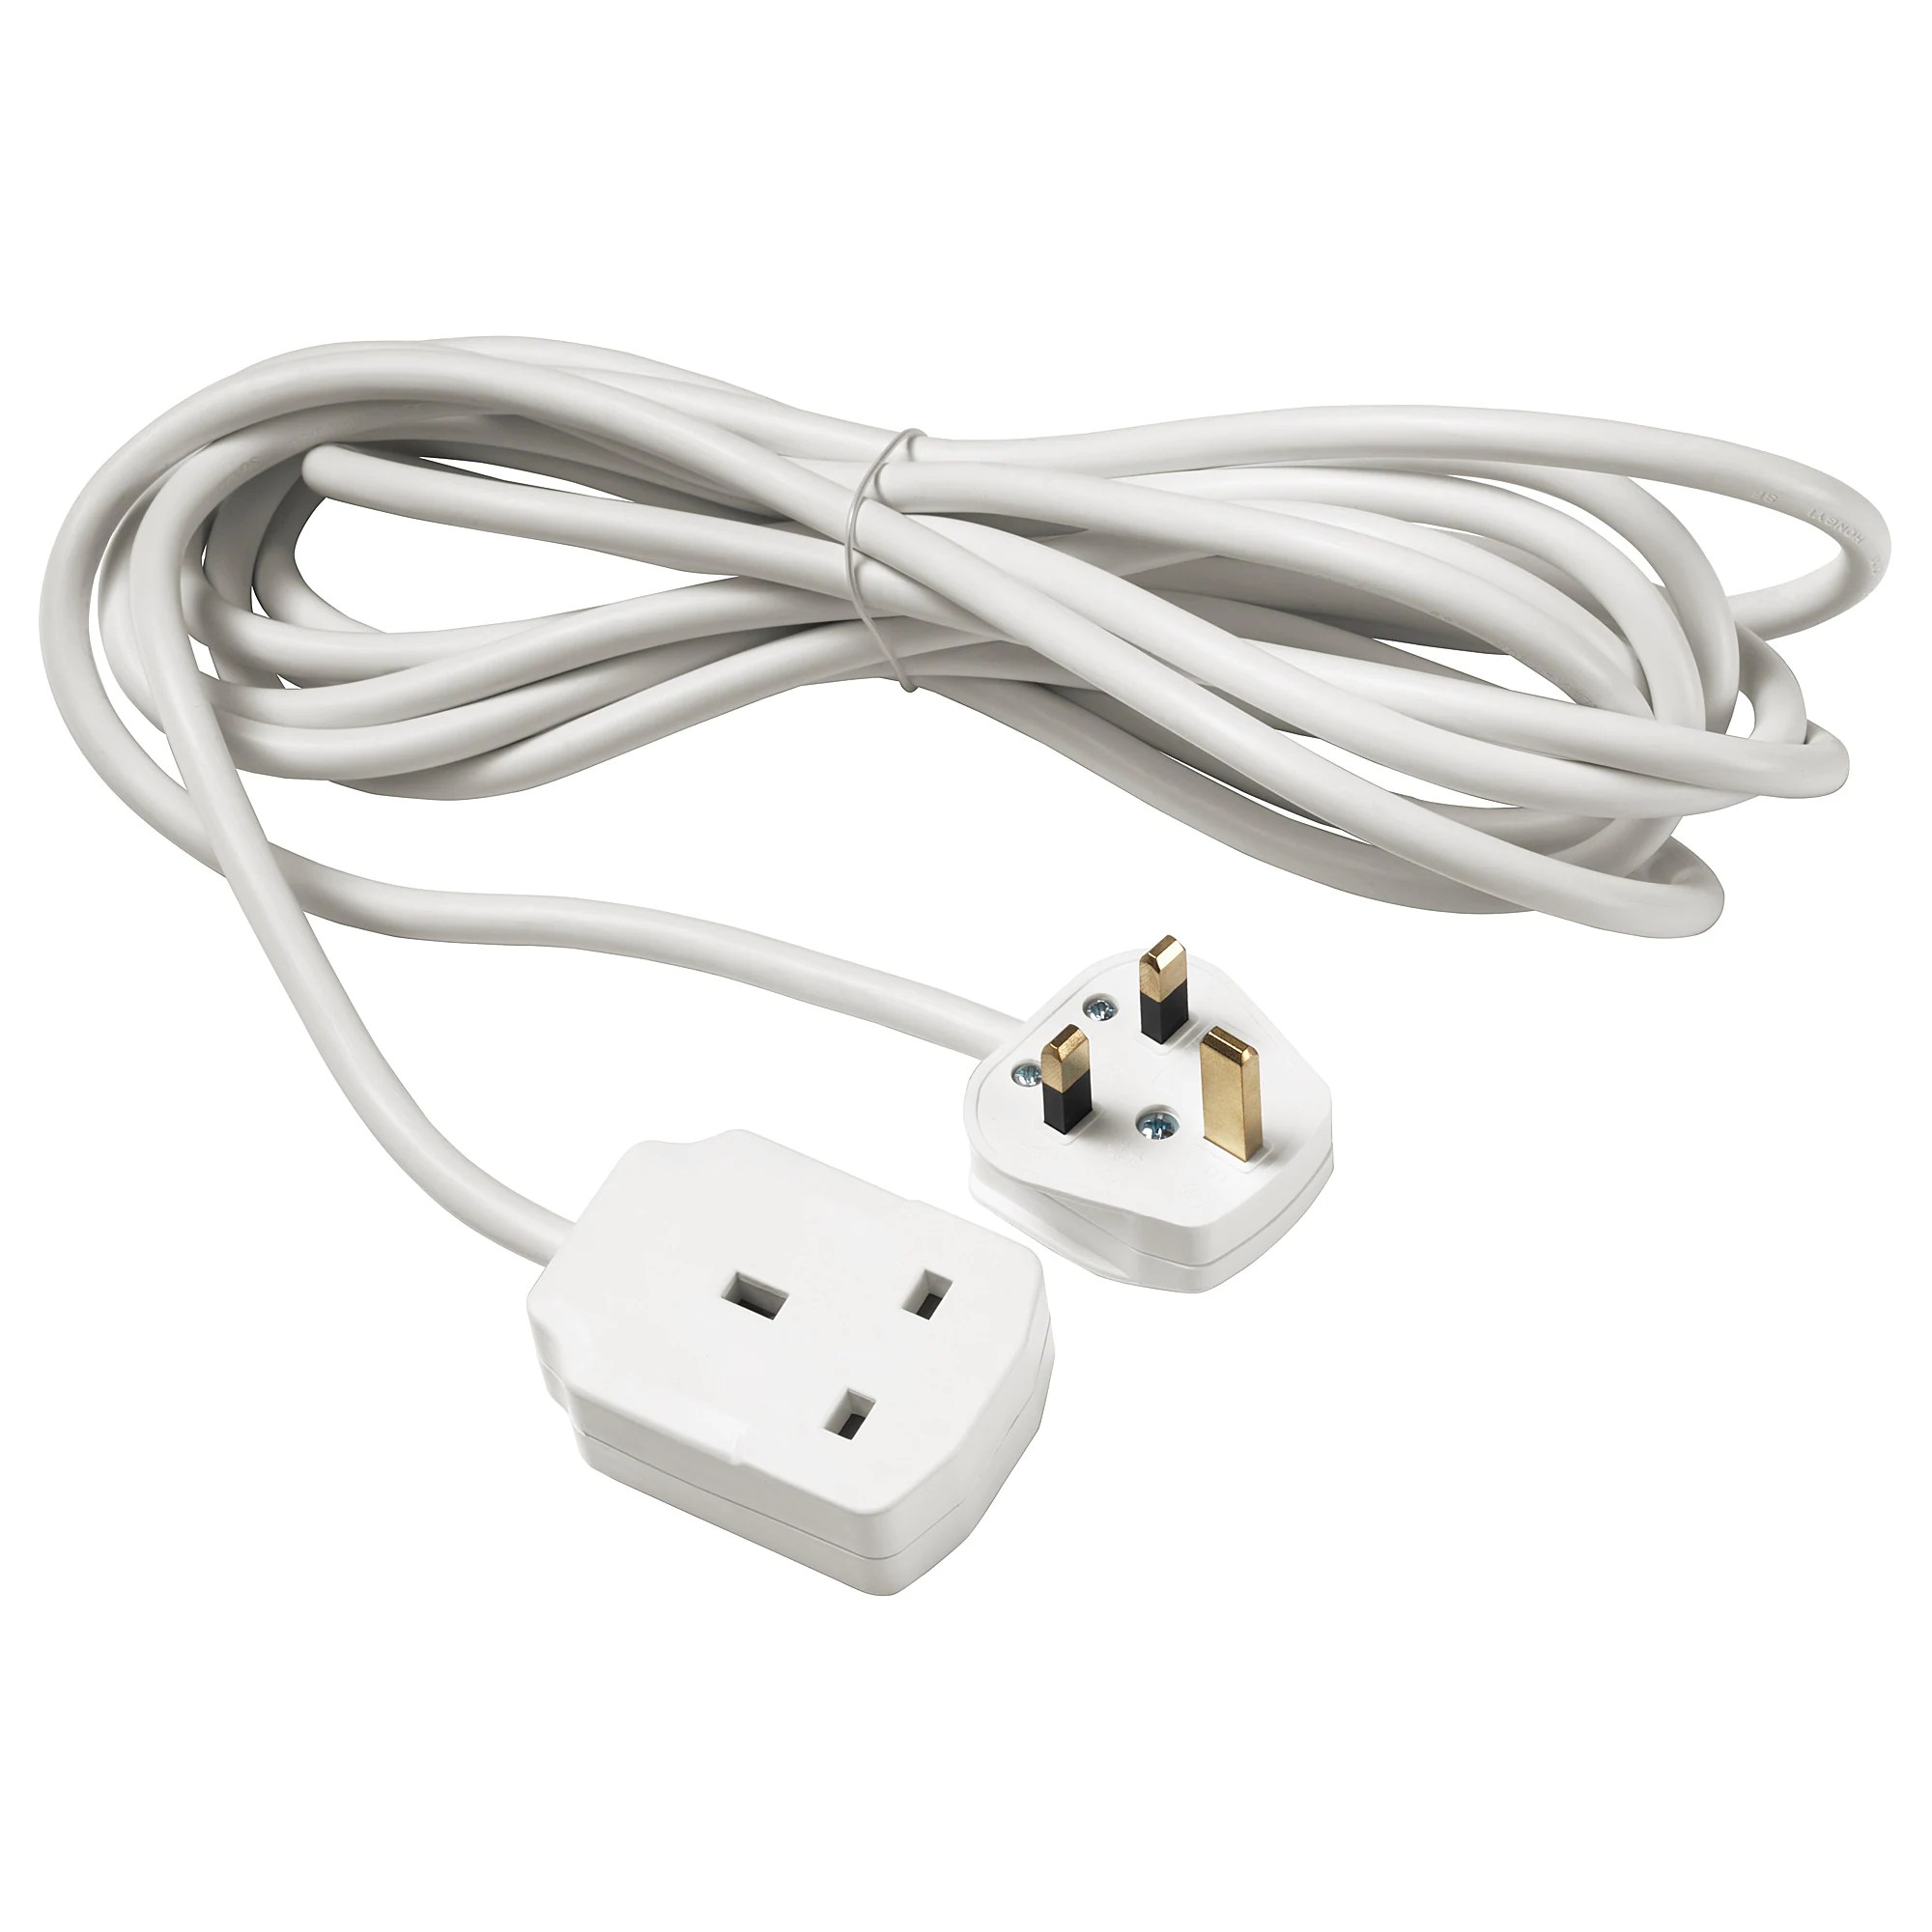 hight resolution of koppla extension cord earthed white 5 m